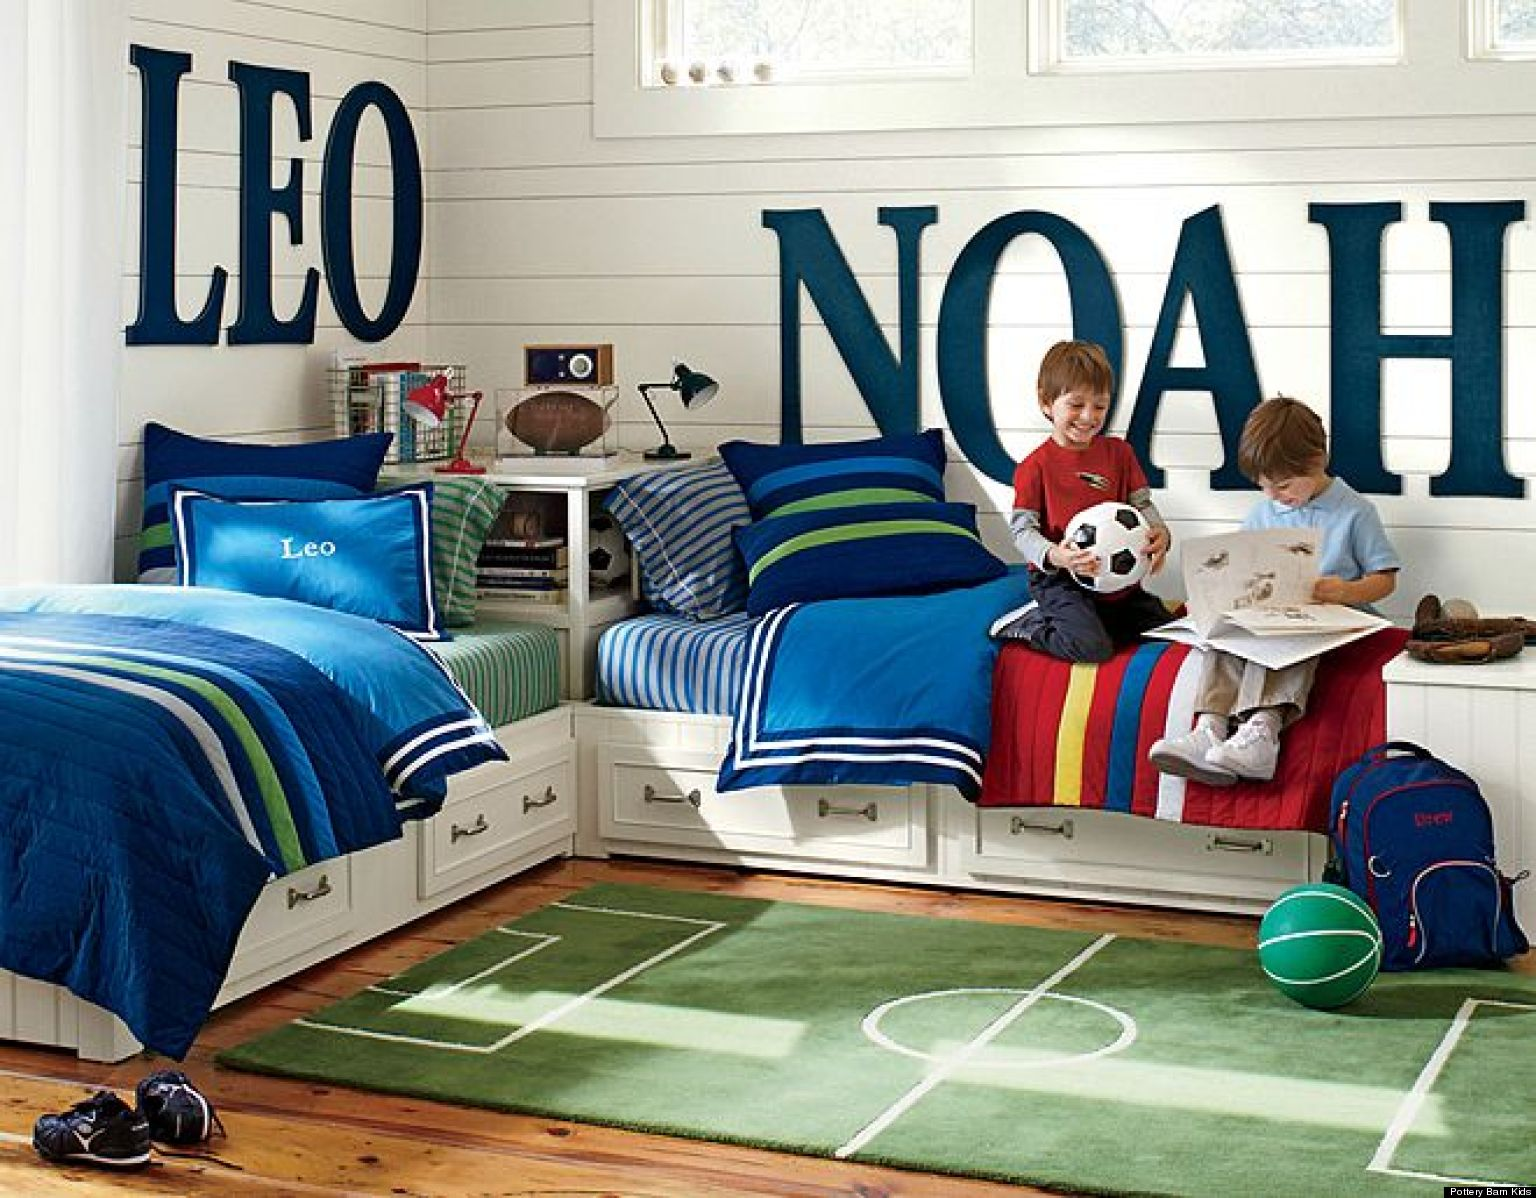 Boys soccer bedroom ideas - Inspiring Shared Kids Bedrooms Huffington